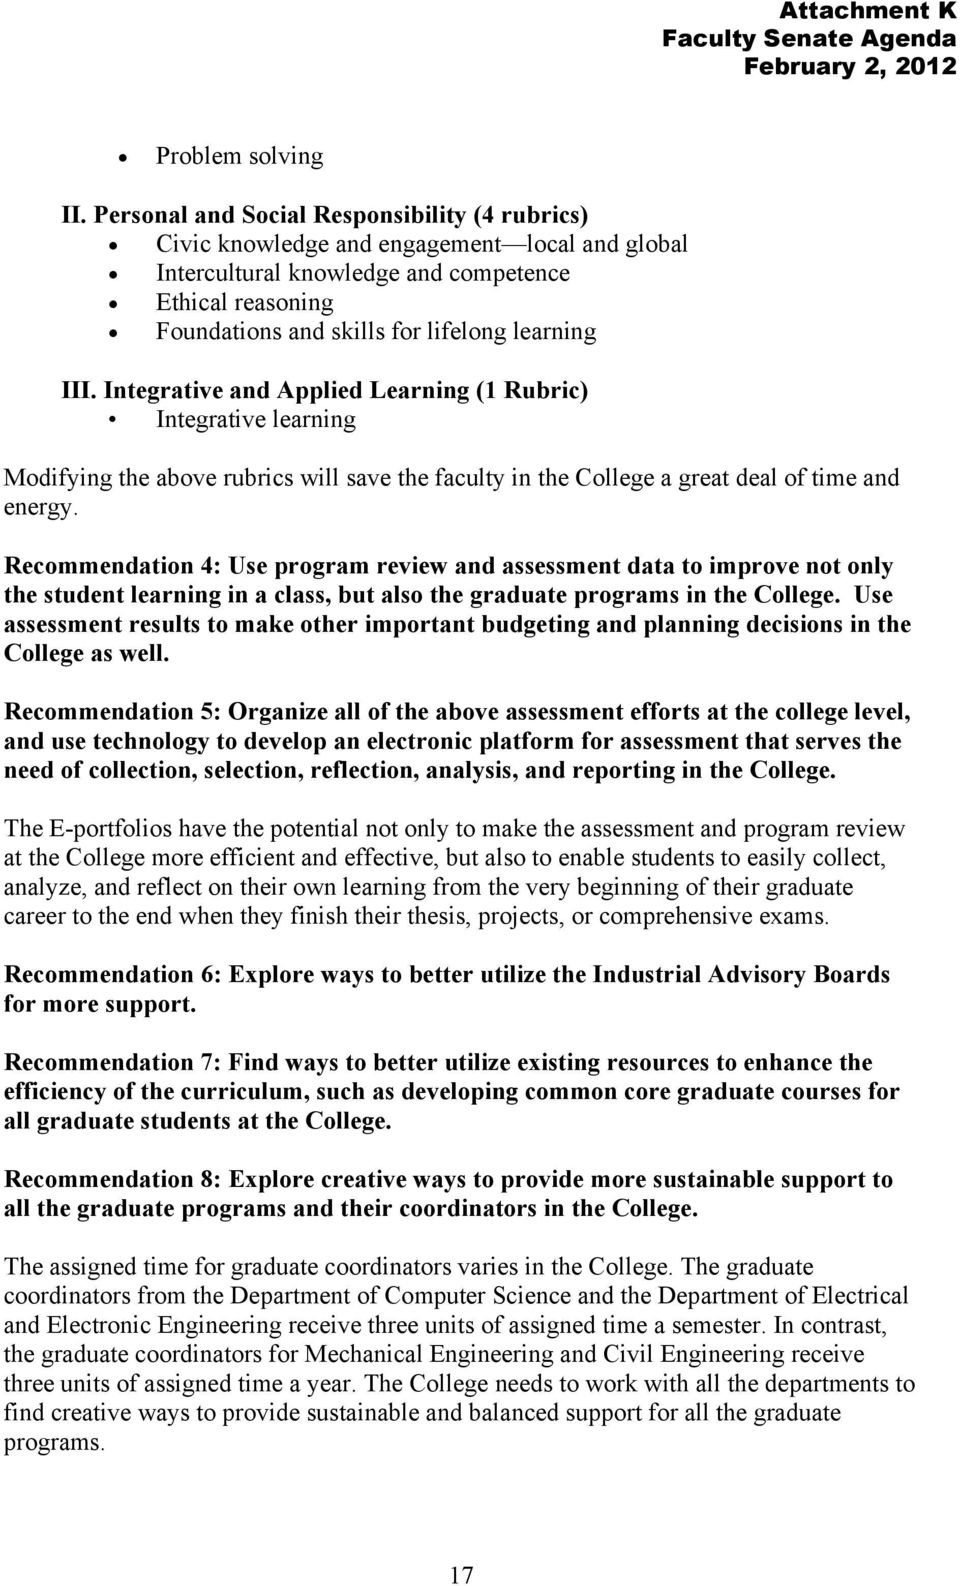 III. Integrative and Applied Learning (1 Rubric) Integrative learning Modifying the above rubrics will save the faculty in the College a great deal of time and energy.